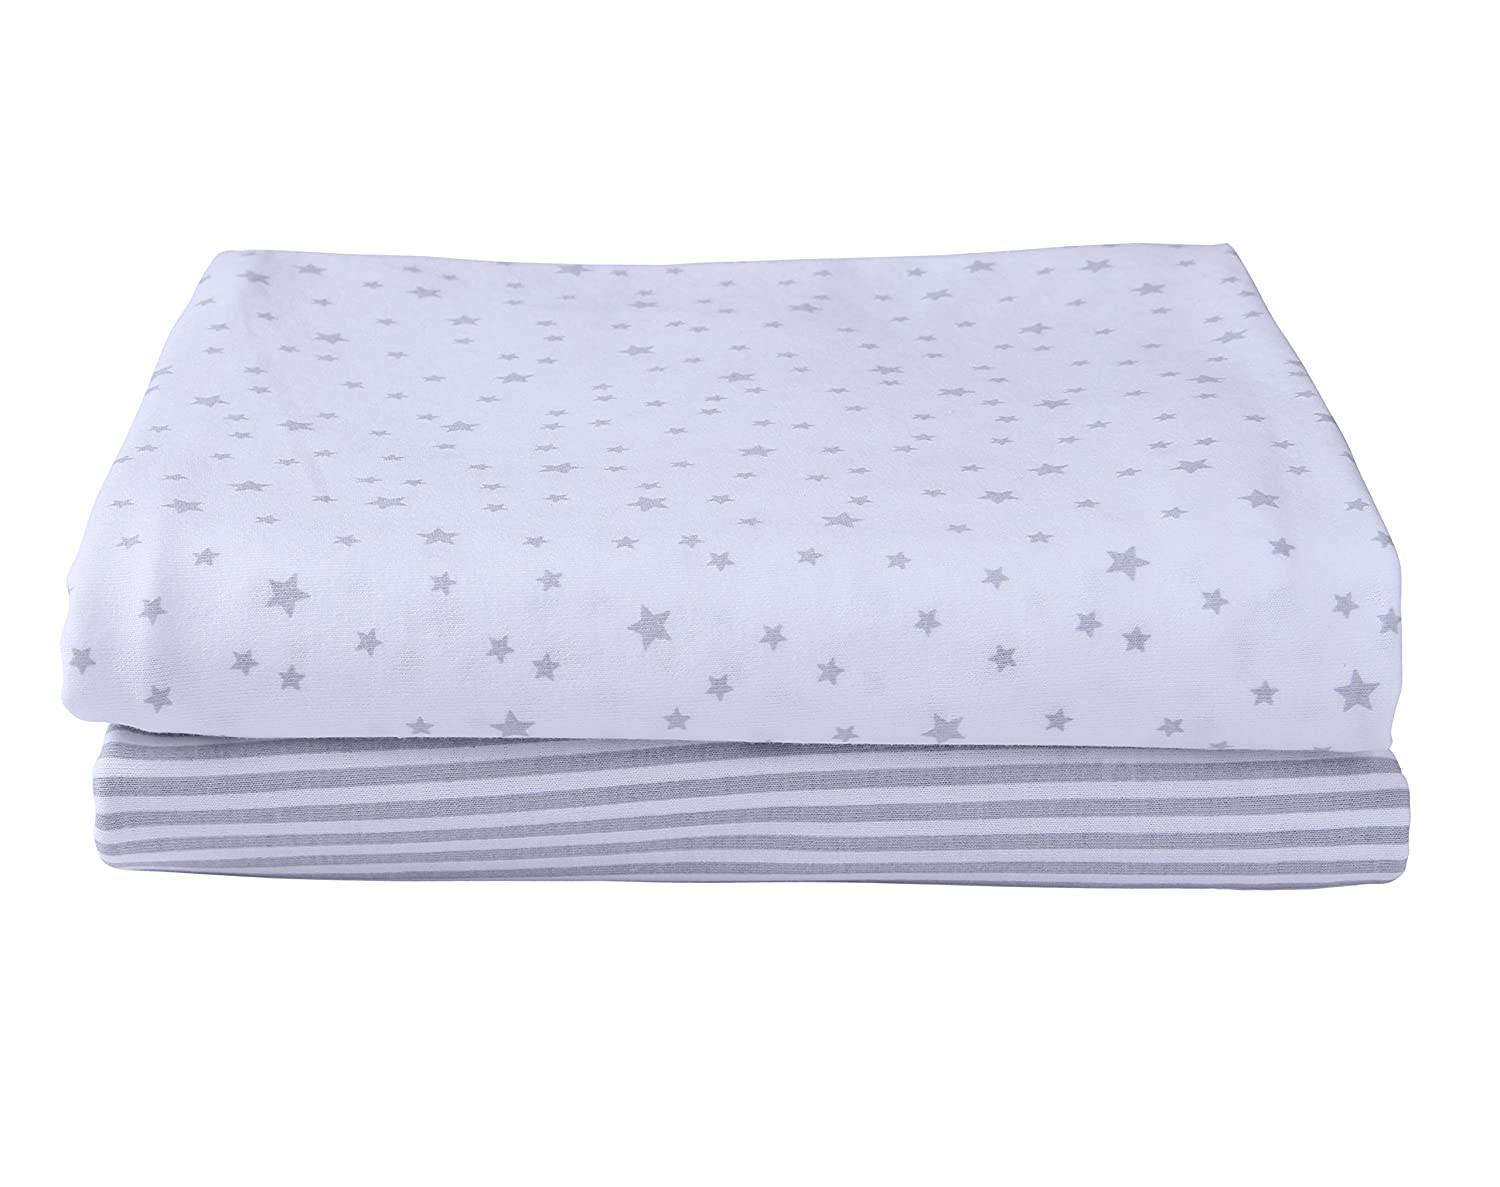 Stars & Stripes 2 Pack Fitted Pram/Crib Sheets - Grey Clair de Lune CL5668G